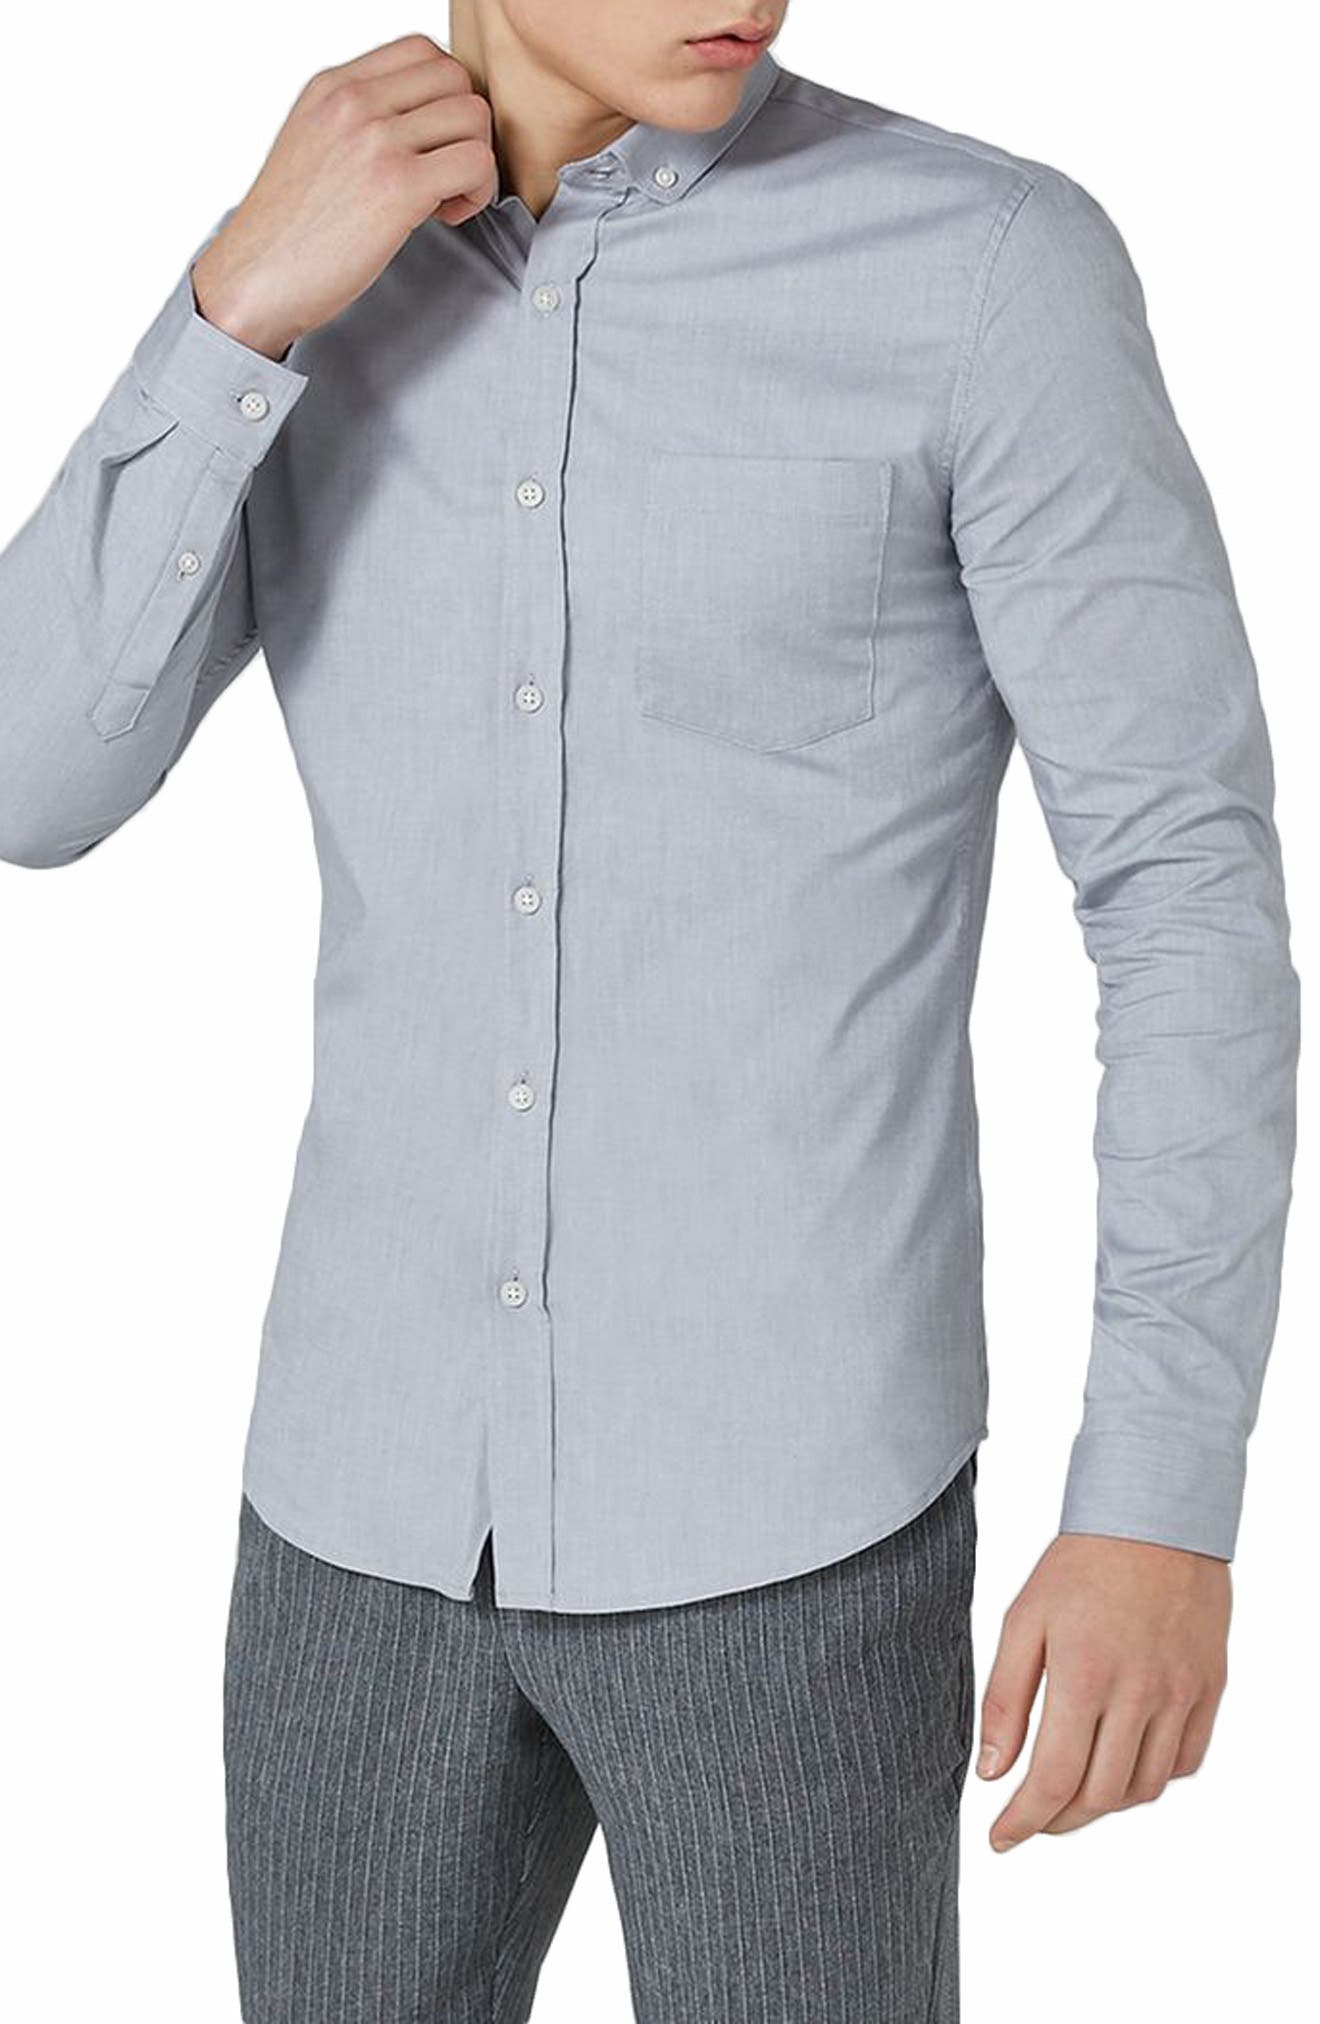 Muscle Fit Oxford Shirt,                             Main thumbnail 1, color,                             020